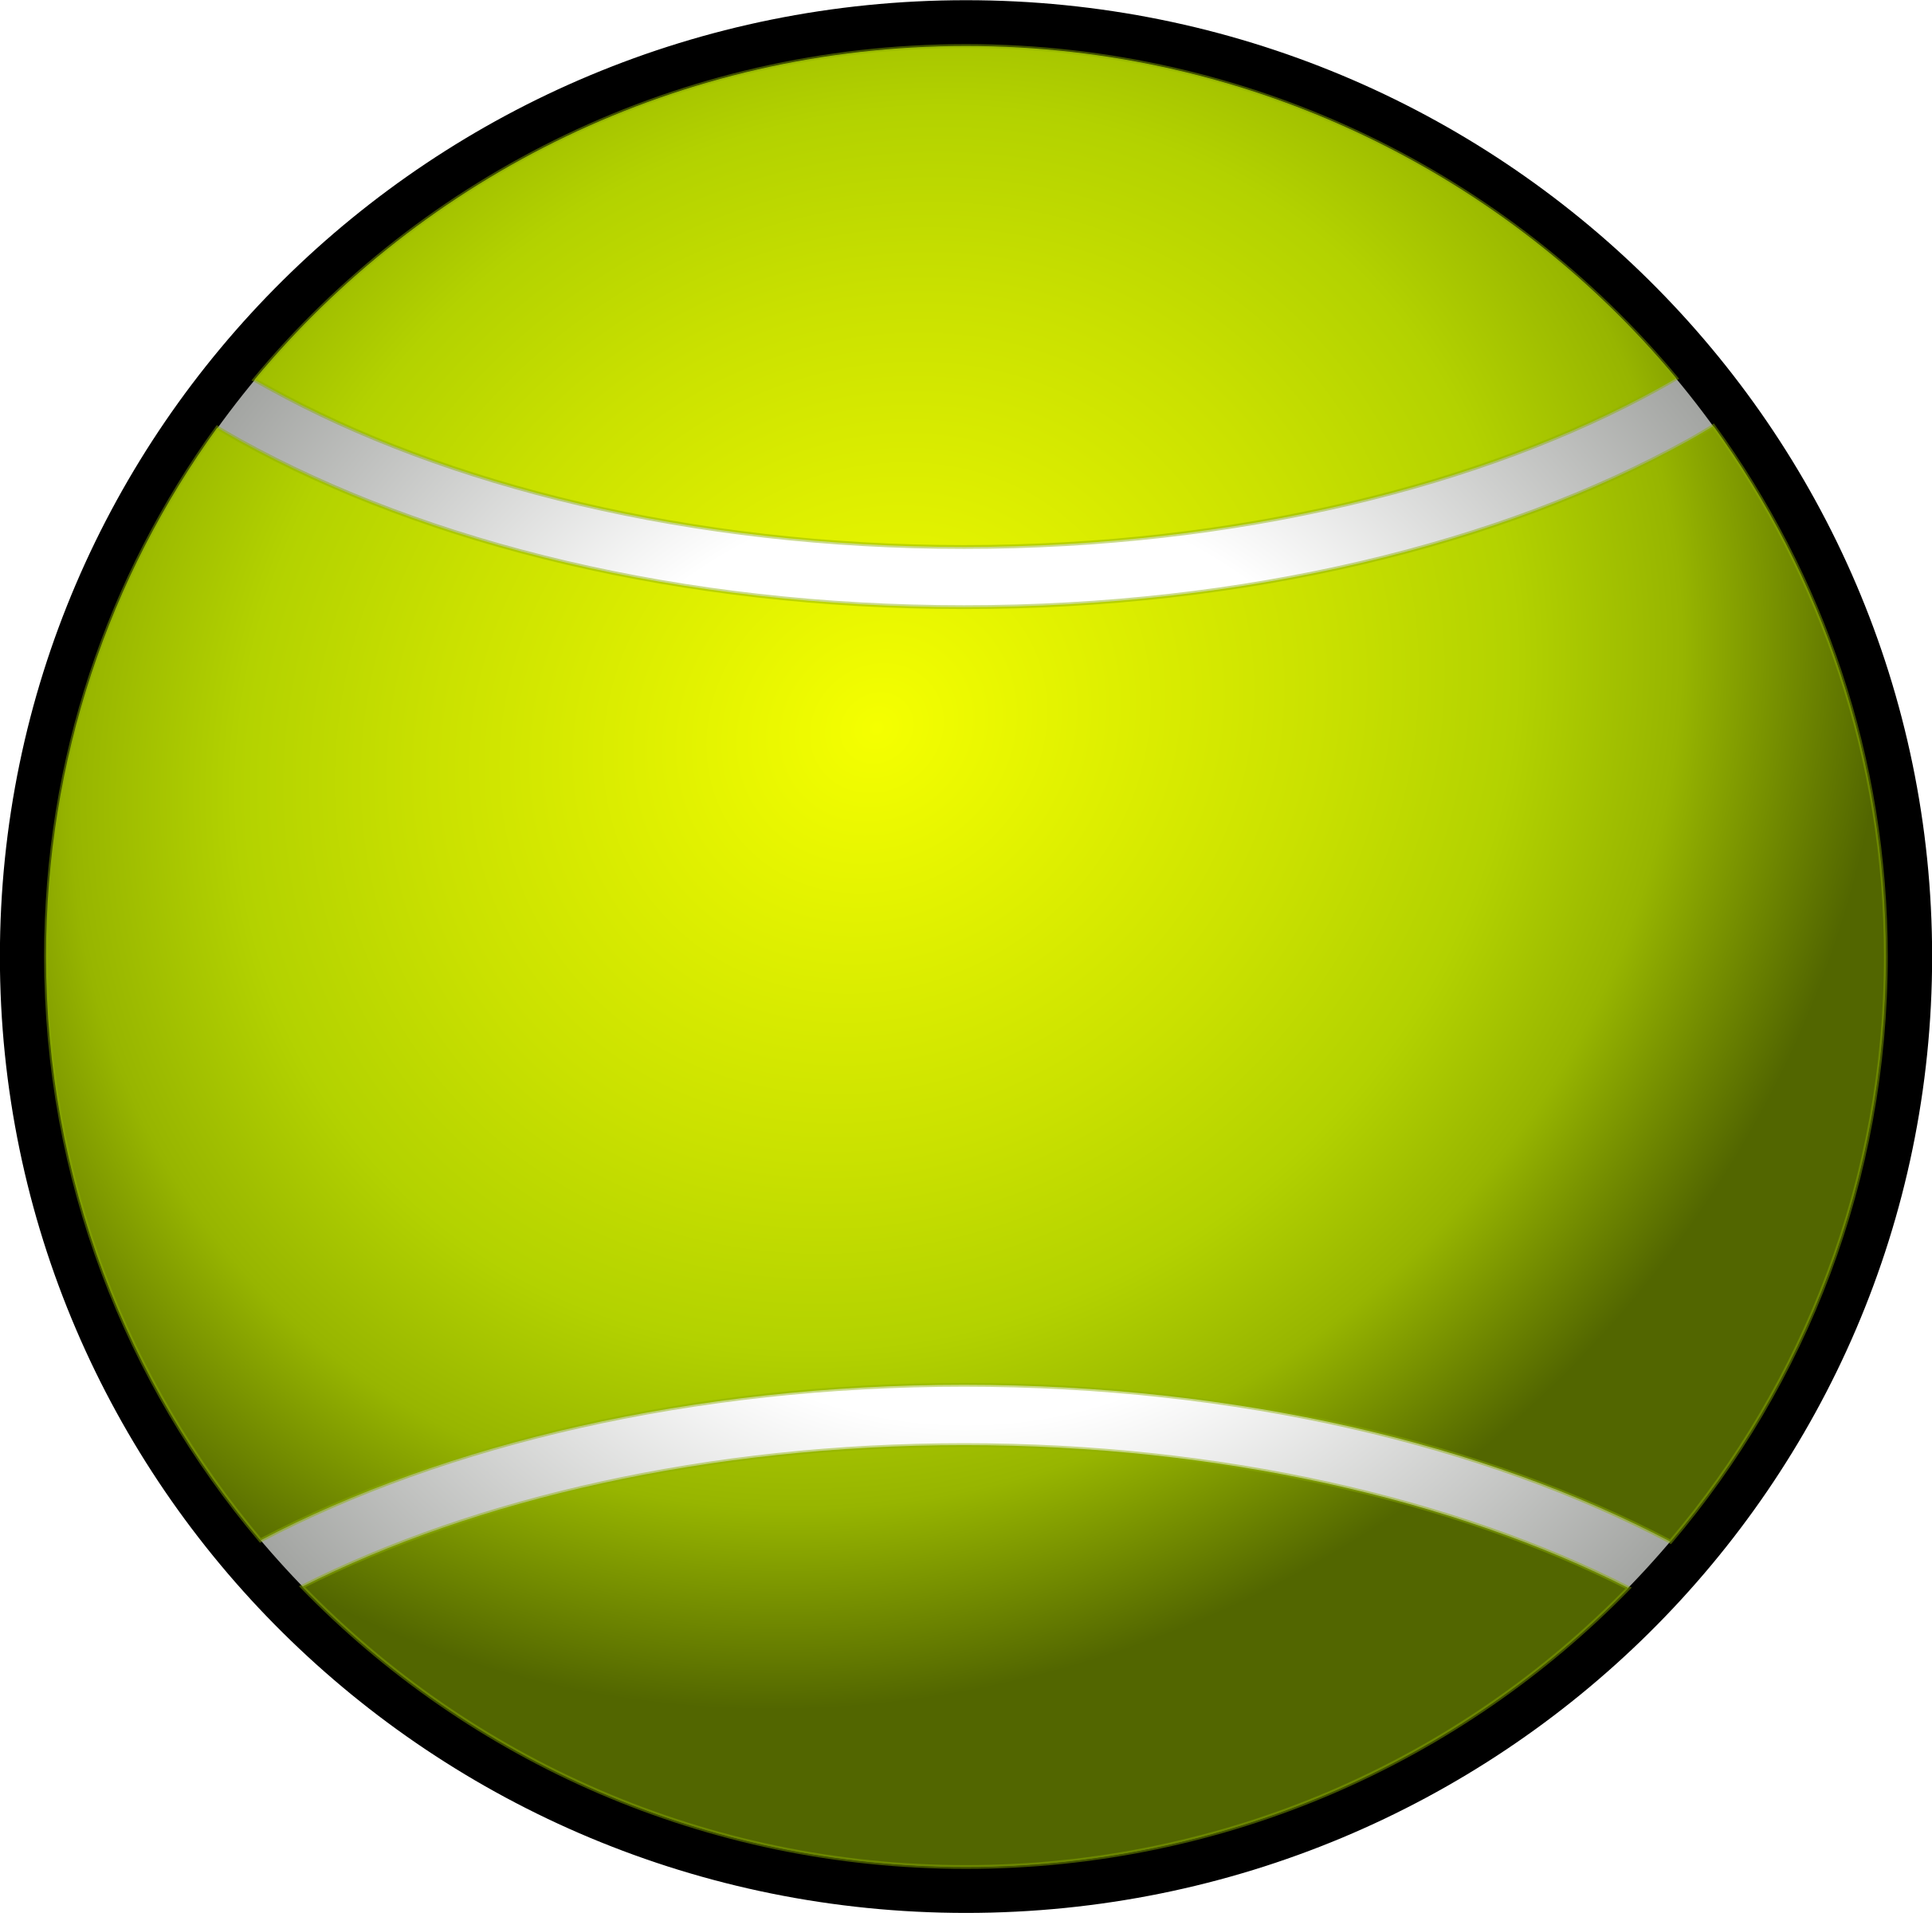 clipart black and white Simple big image png. Tennis ball clipart